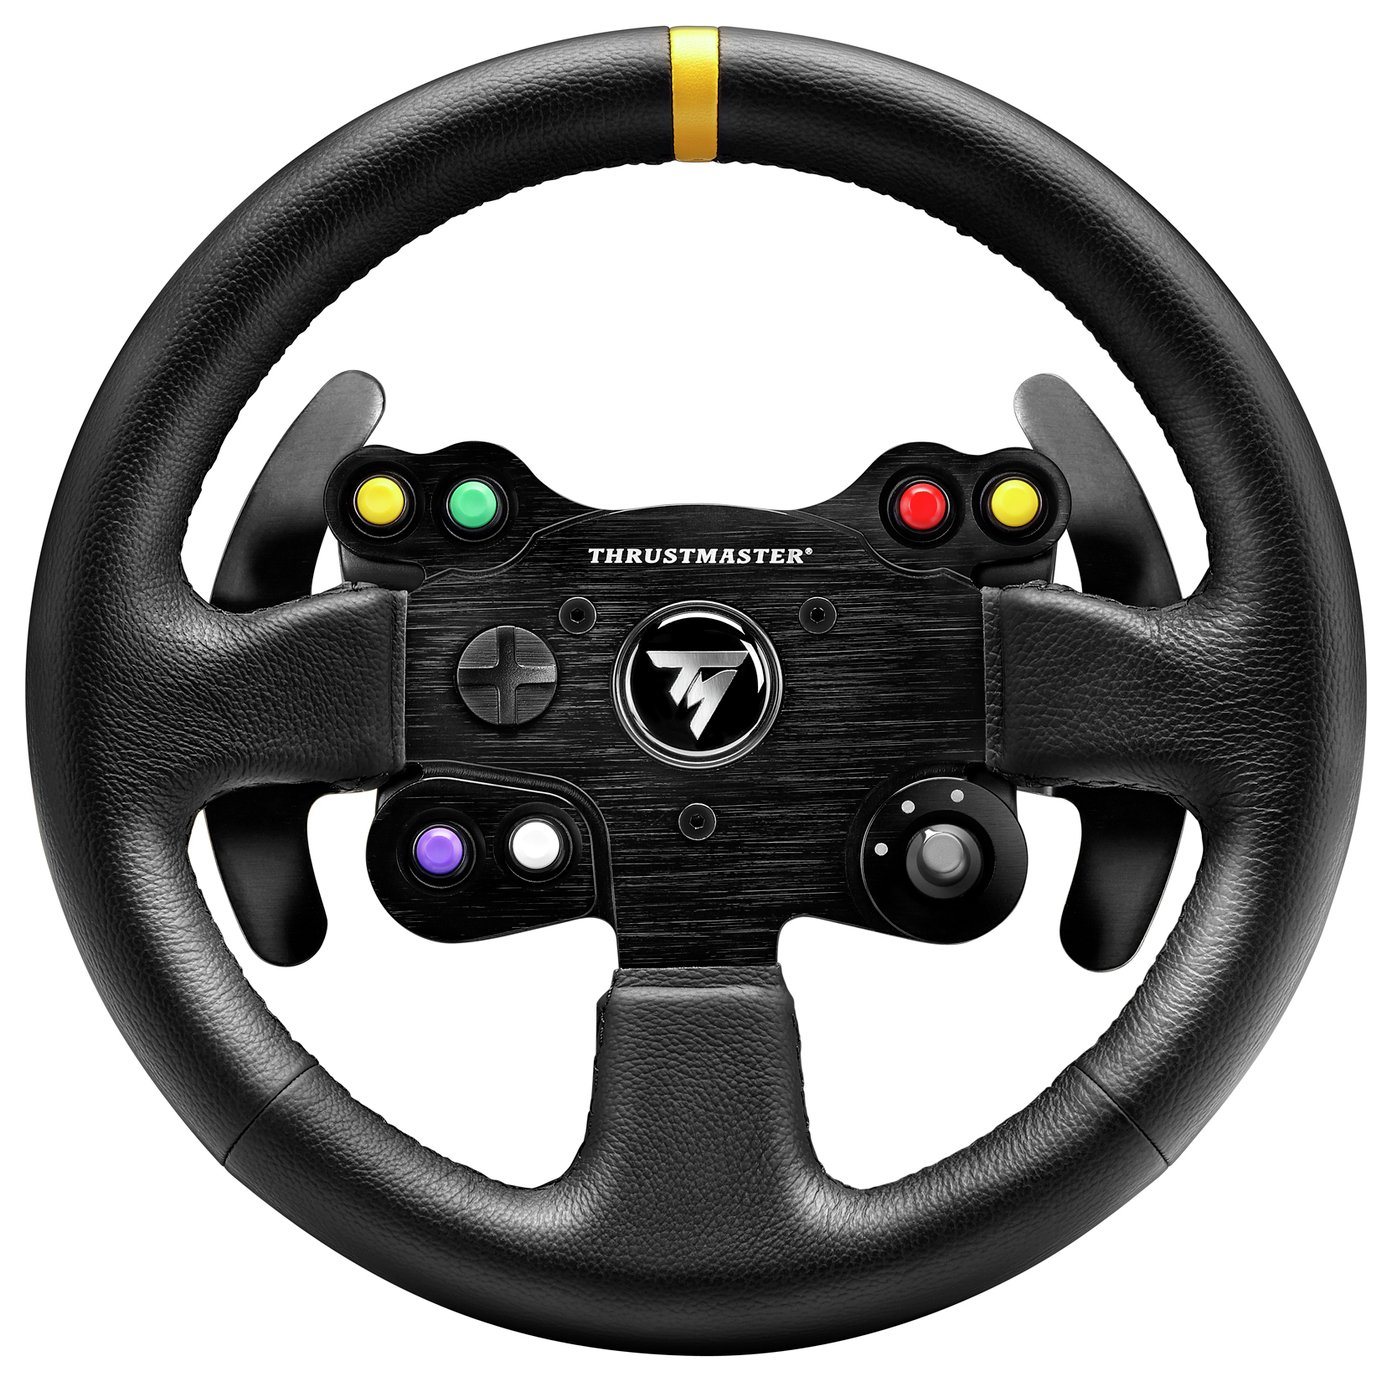 Image of Thrustmaster TM28GT Steering Wheel Add-On